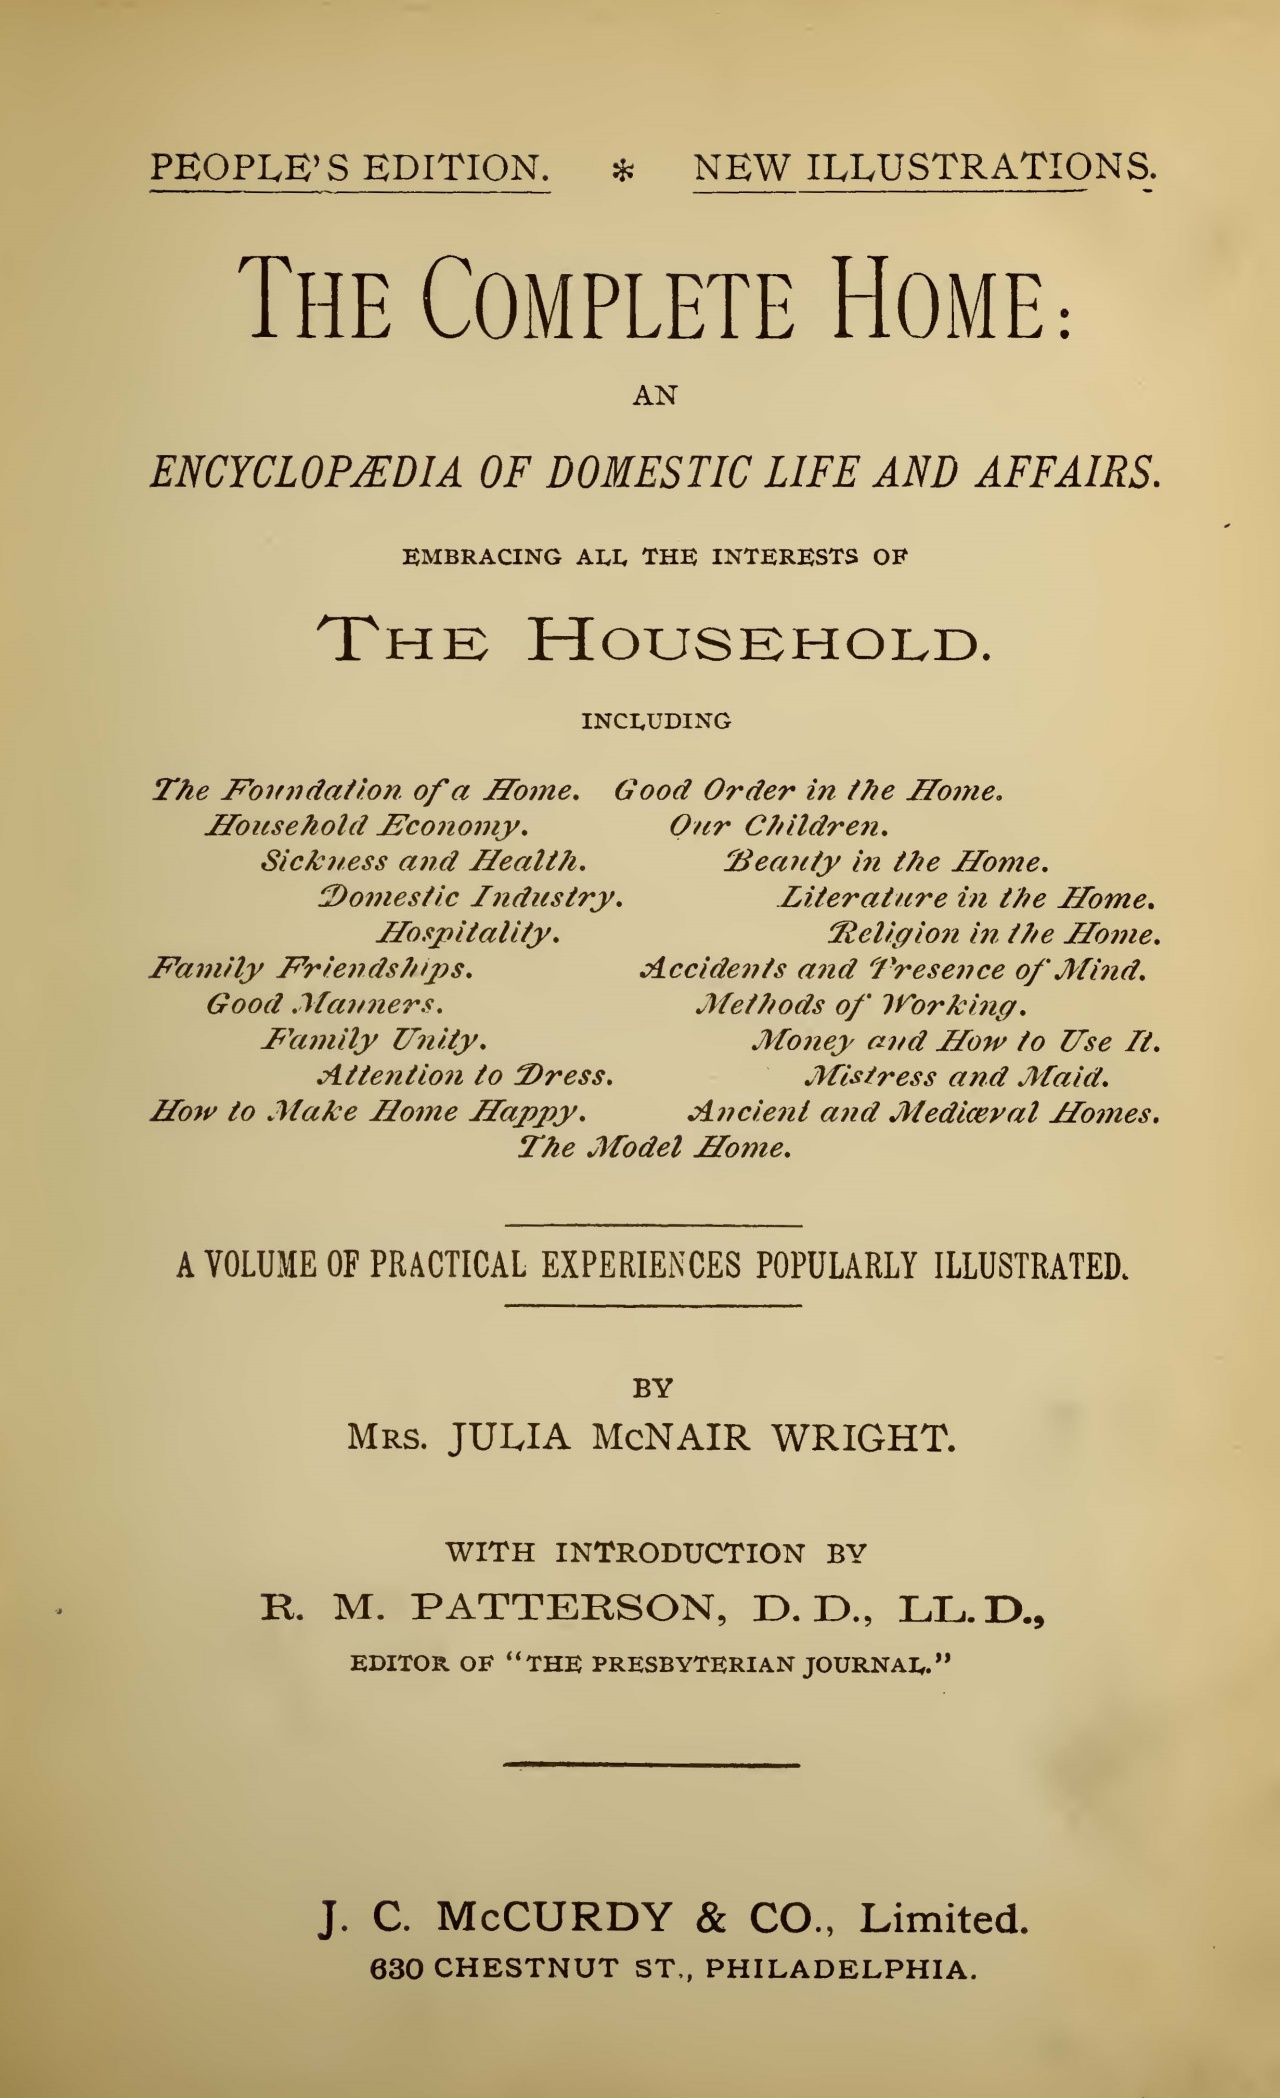 Wright, Julia McNair, The Complete Home Title Page.jpg